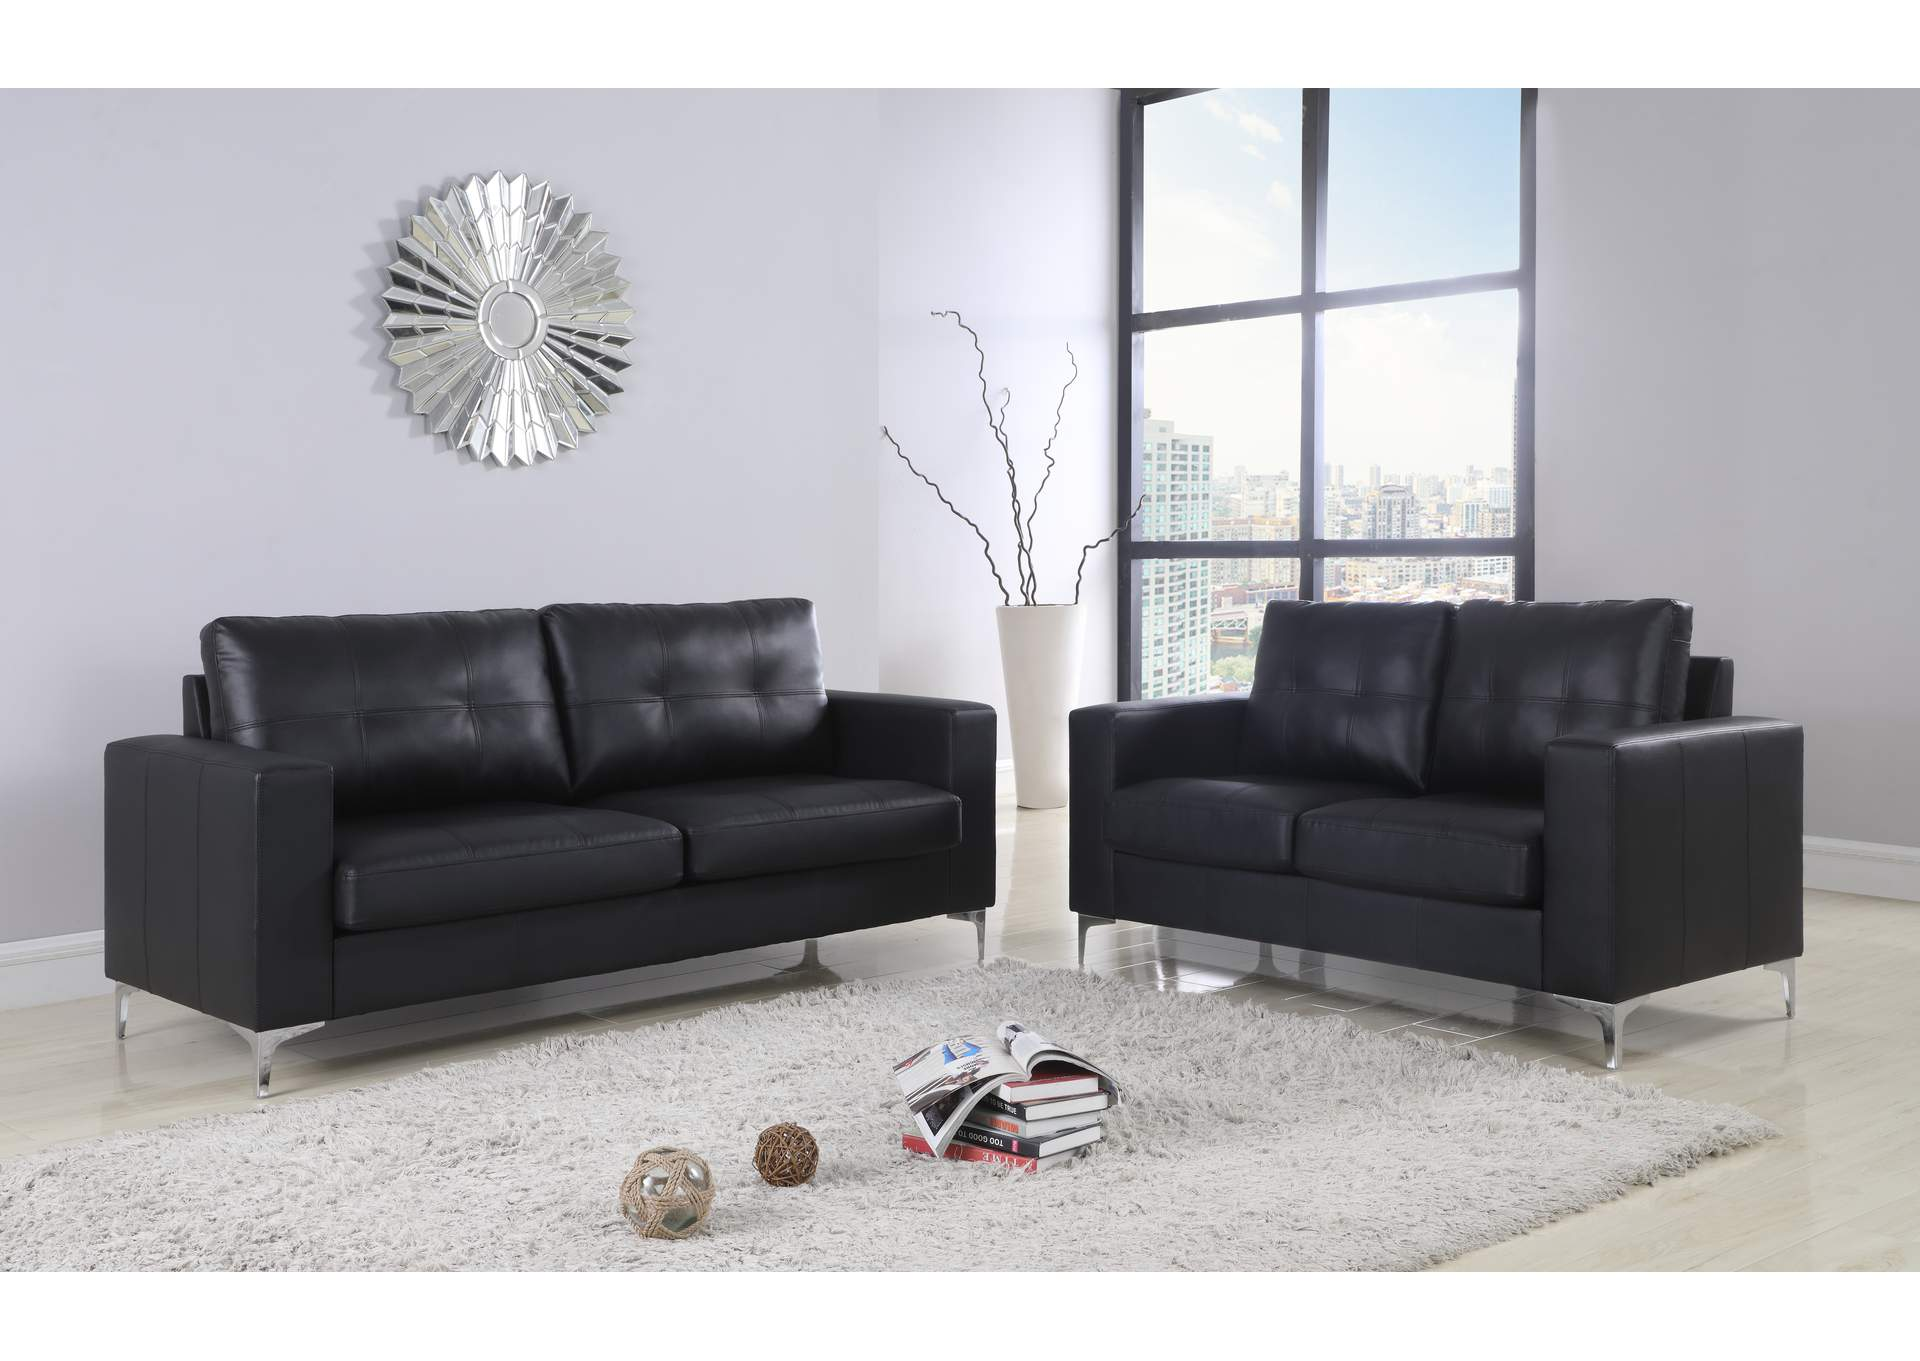 Black Contemporary Leather Sofa With Chrome Leg,Global Trading